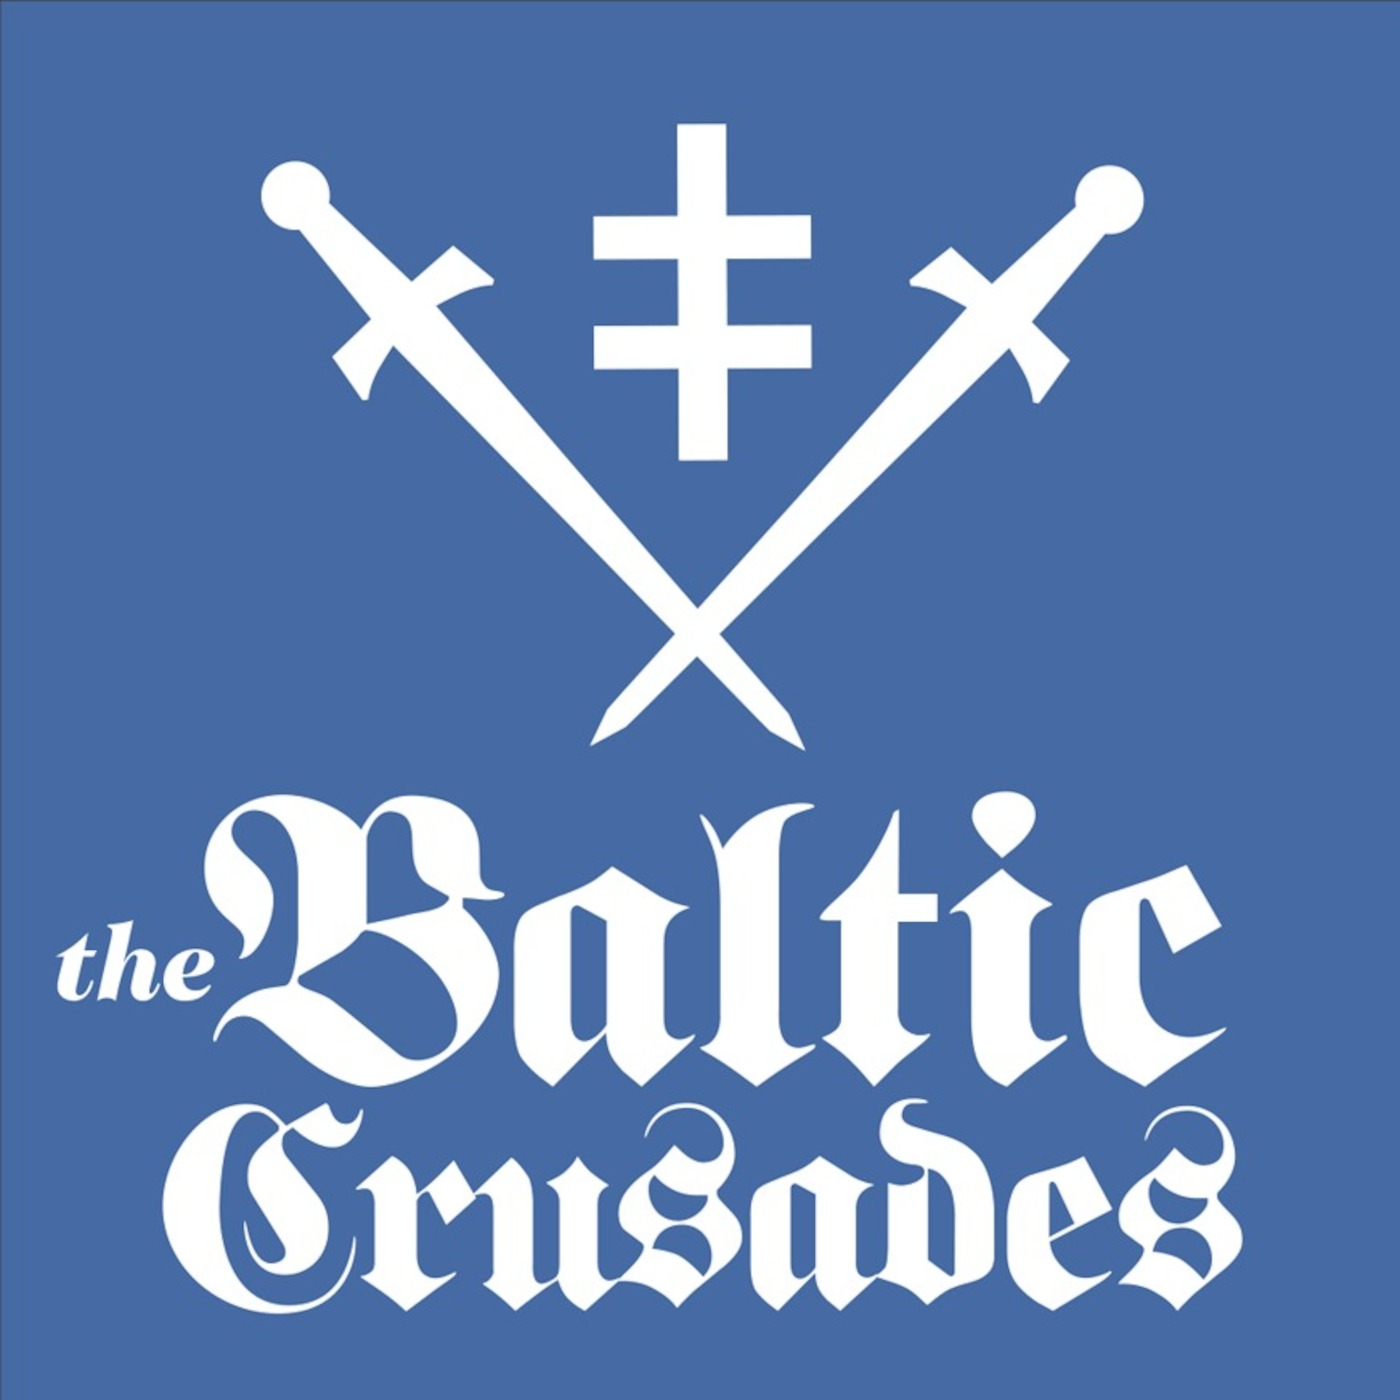 Episode 248 - The Baltic Crusades